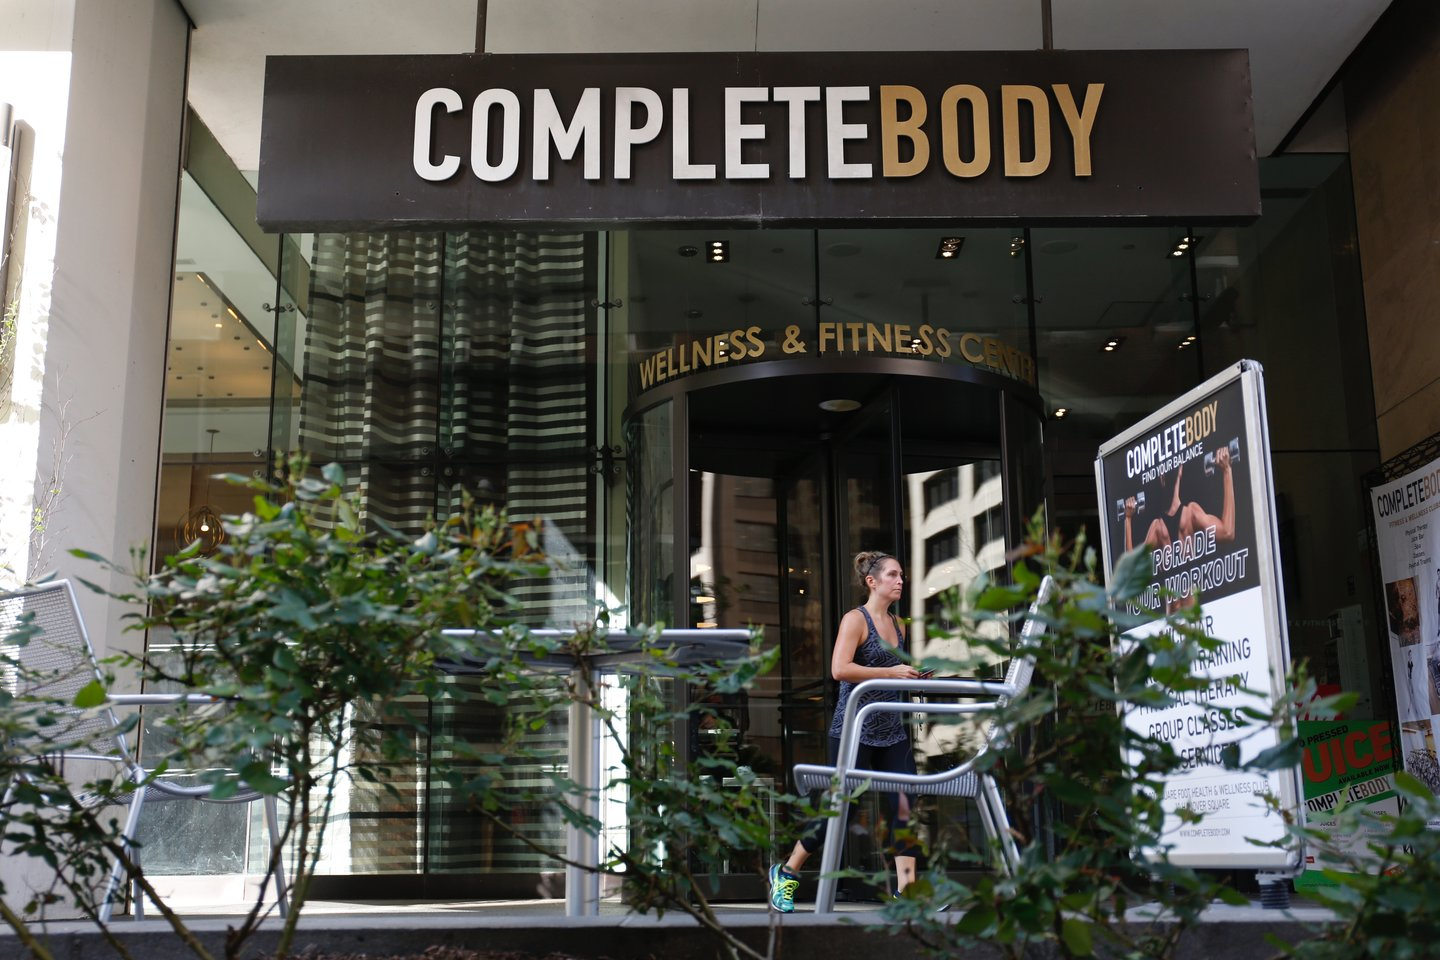 Complete Body Gym - Re-introducing luxury fitness to a downtown area